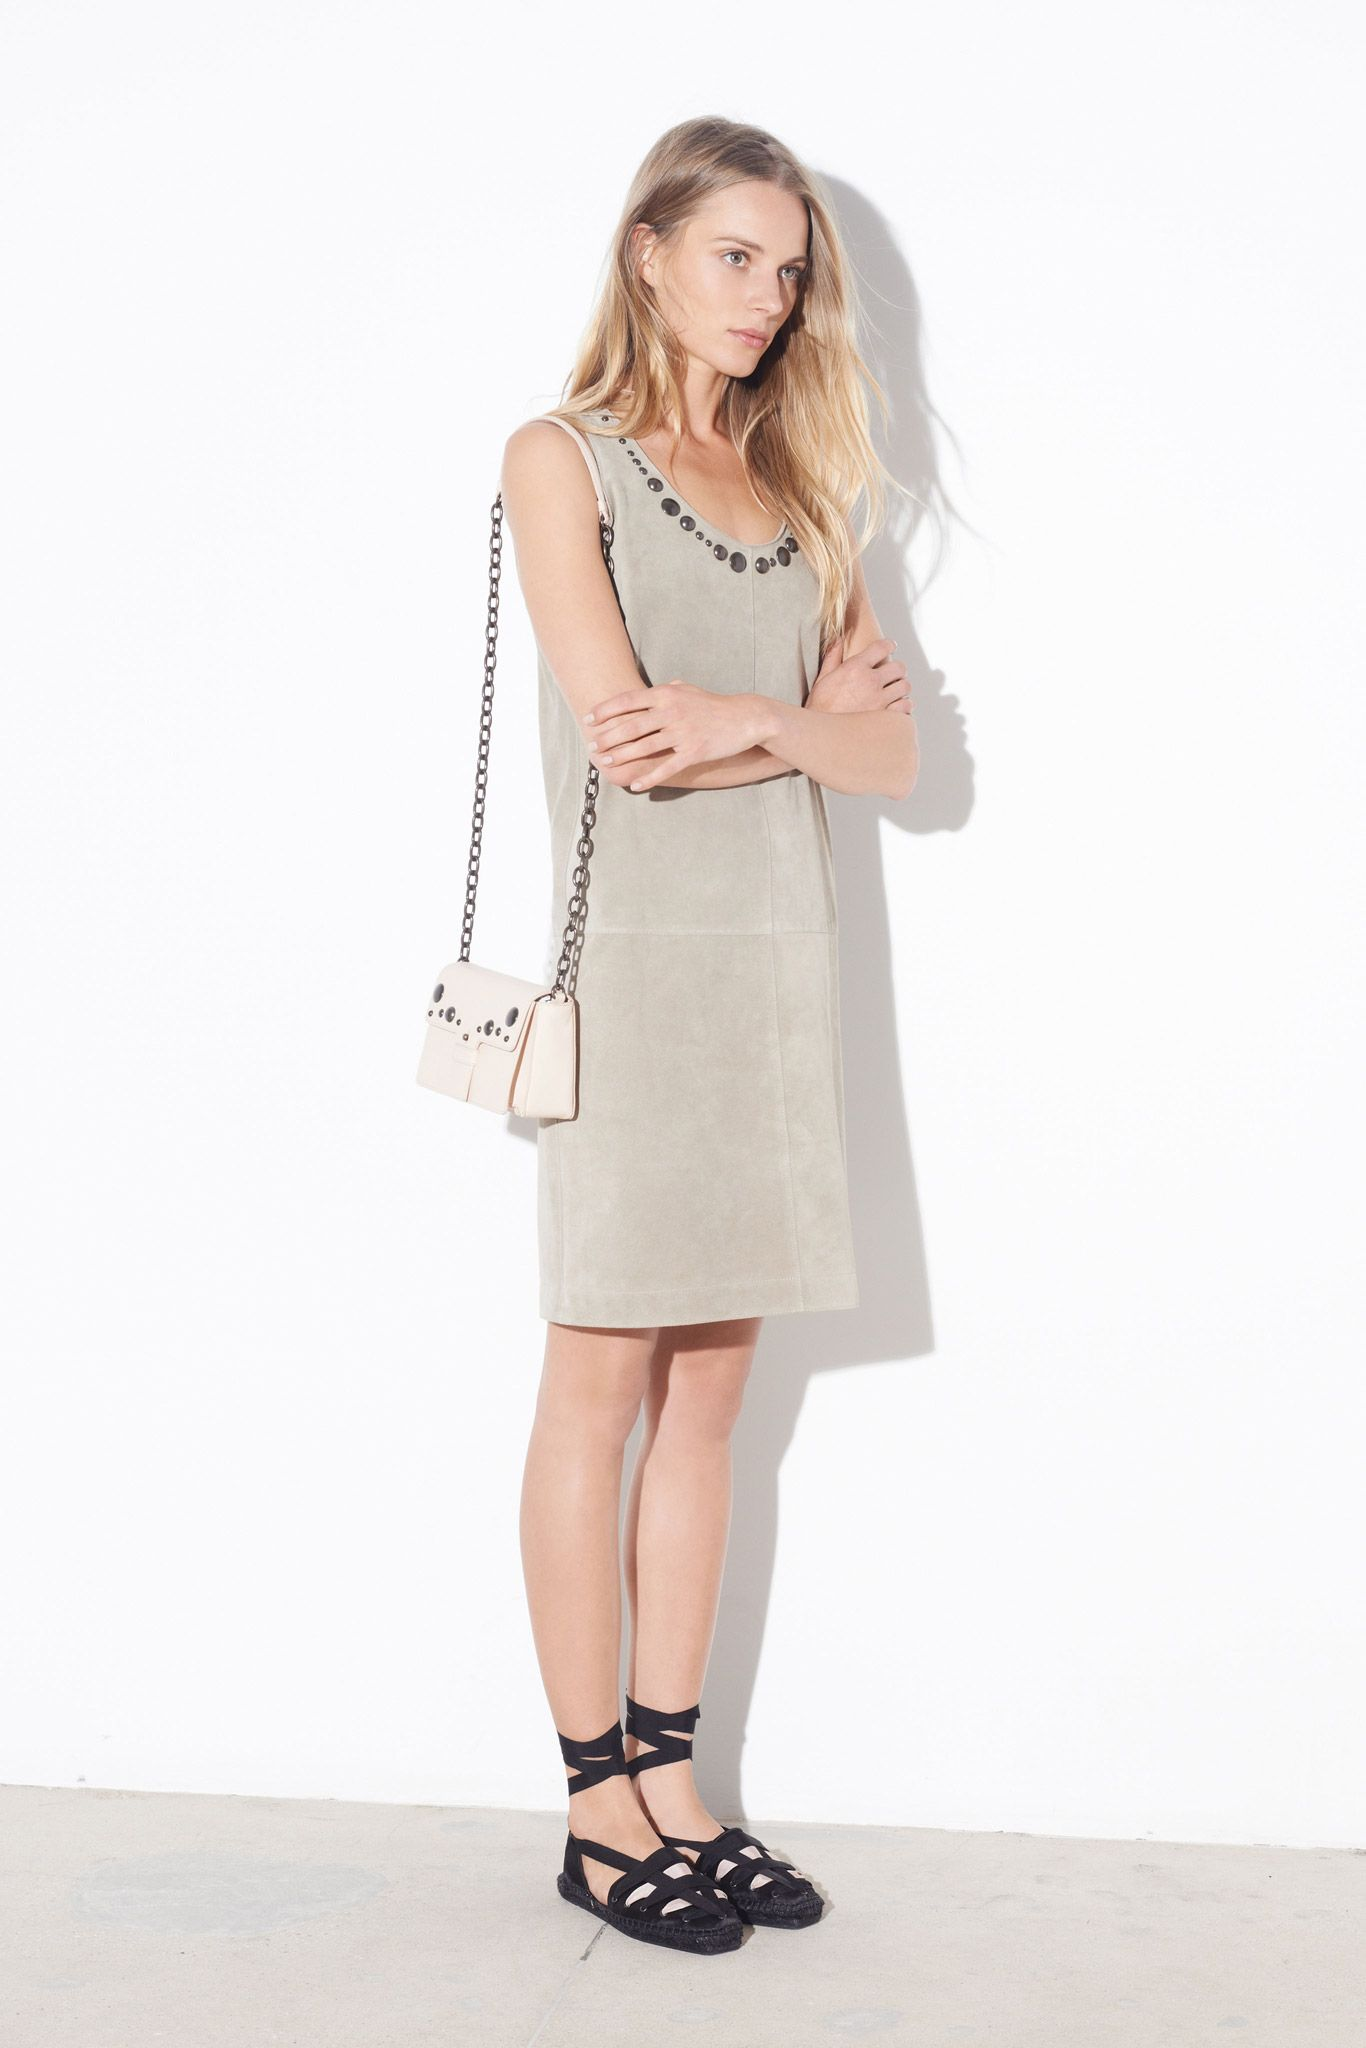 Tomas Maier | Spring 2015 Ready-to-Wear | 34 Grey suede studded strappy mini dress